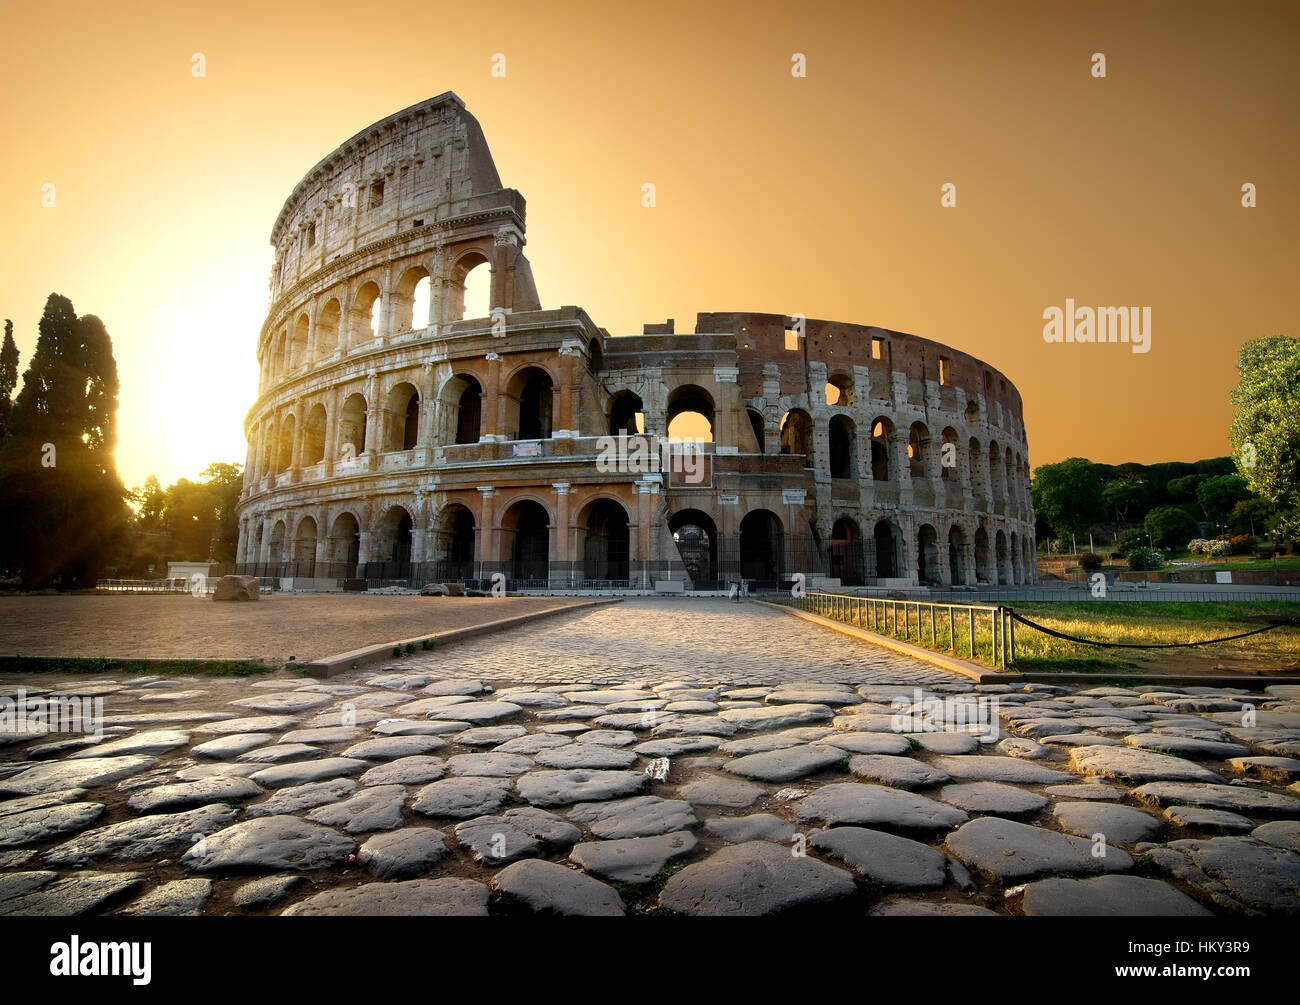 Colosseum and yellow sky in Rome, Italy - Stock Image